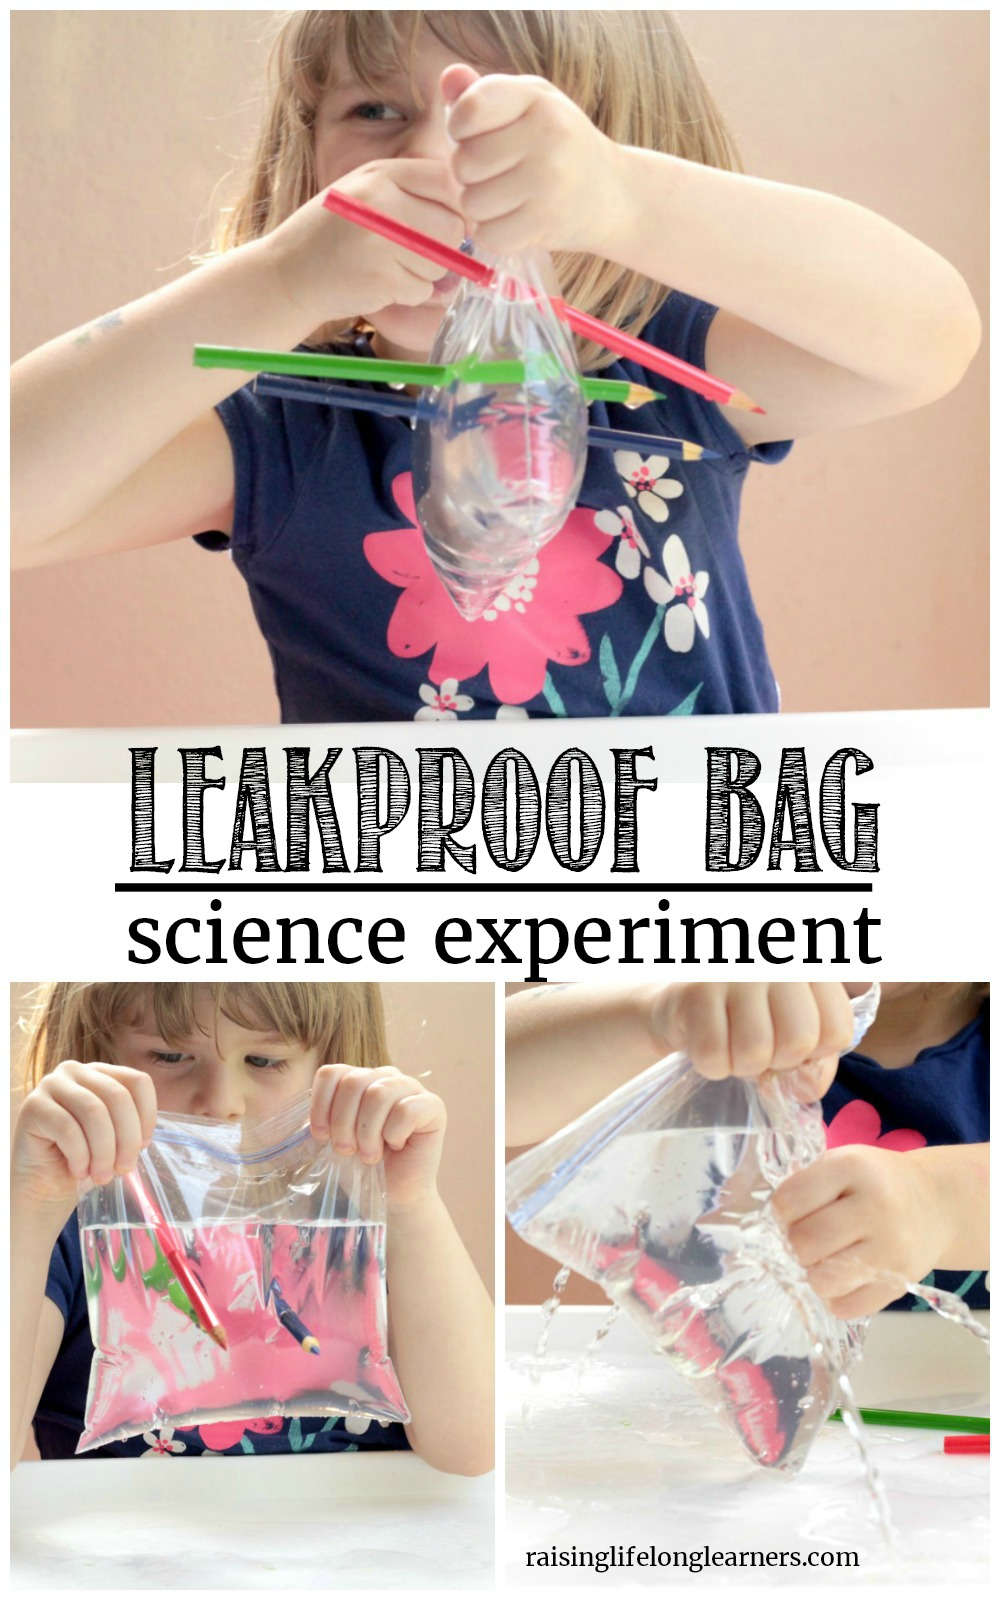 Kids will love trying the classic science experiment of the leak proof bag! Just a pencil and a bag produces the most impressive science demonstration.